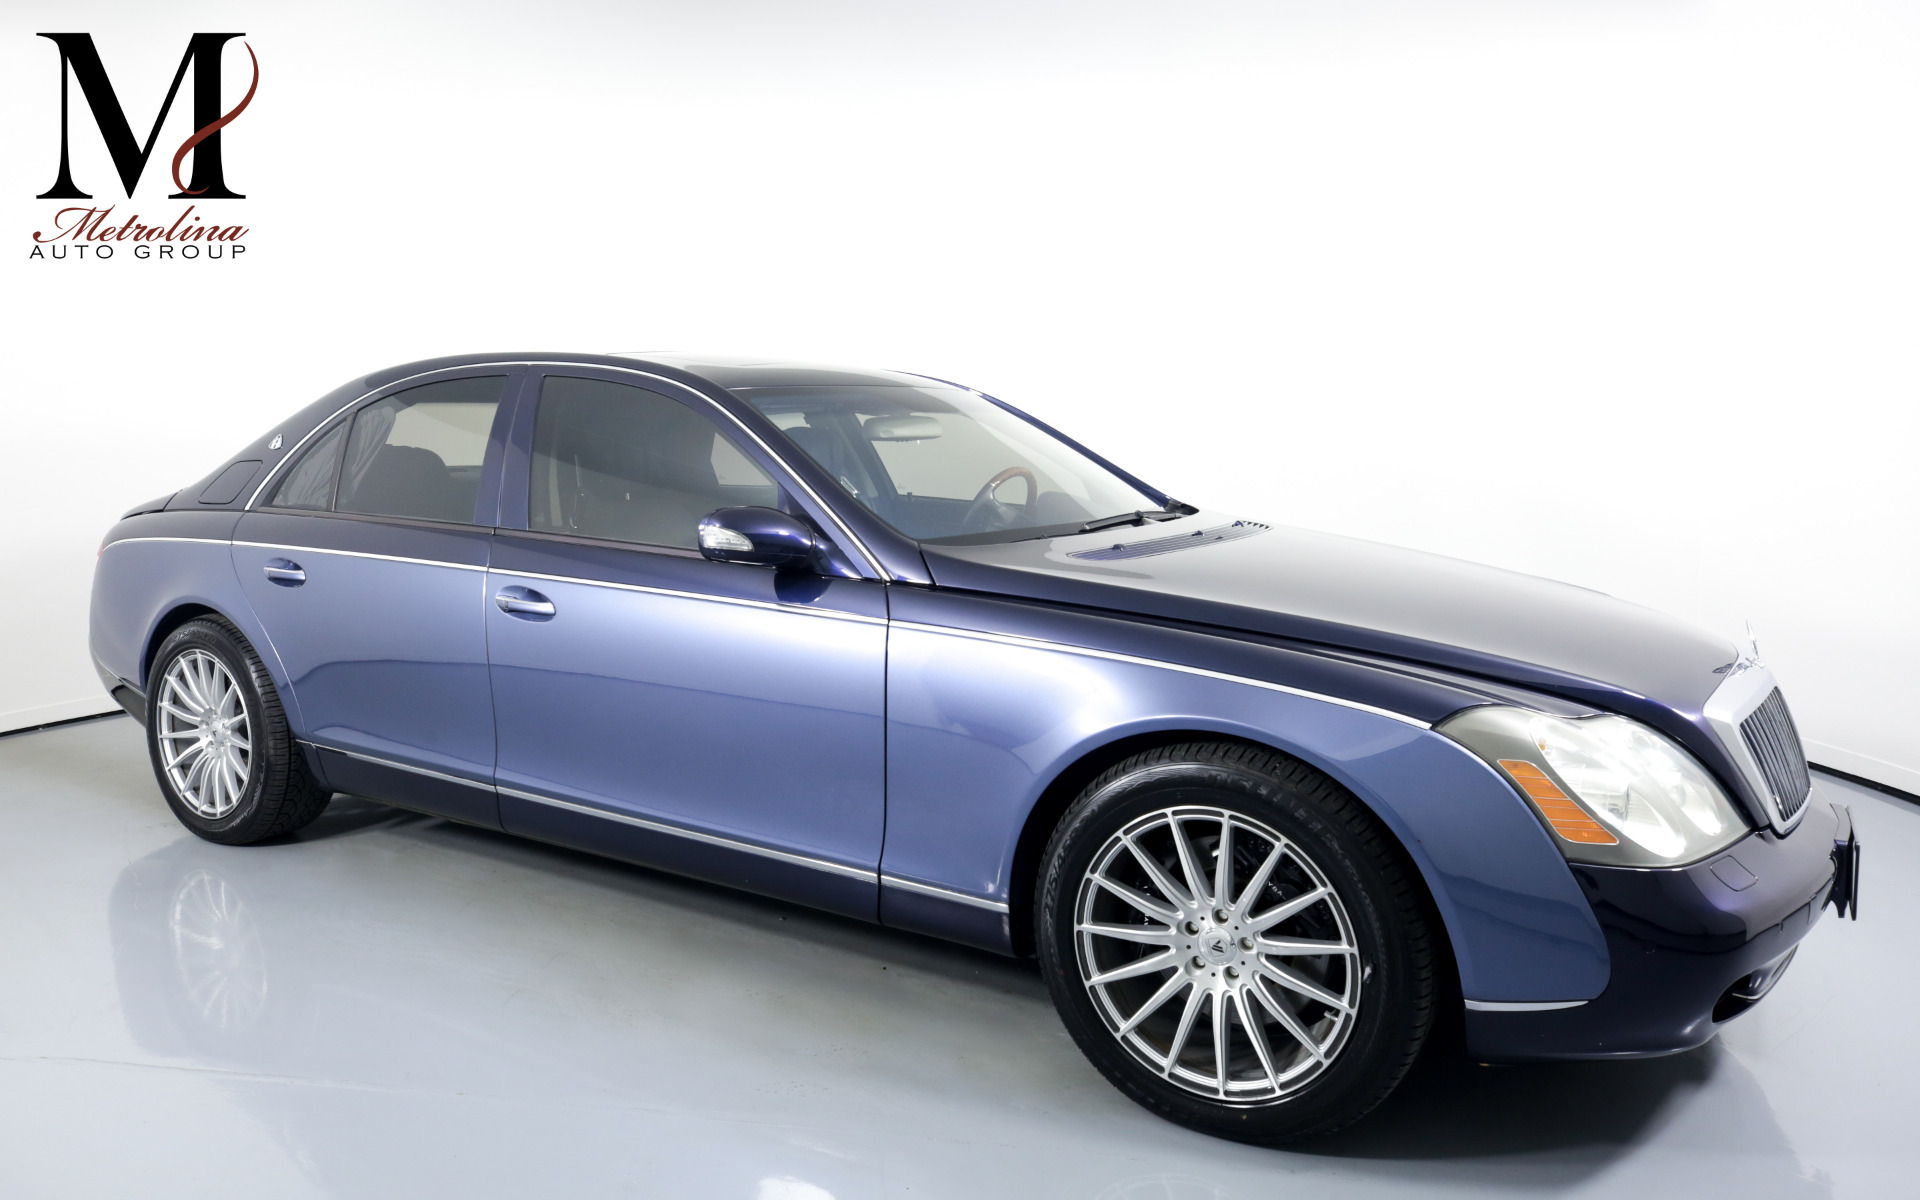 Used 2004 Maybach 57 for sale Sold at Metrolina Auto Group in Charlotte NC 28217 - 1